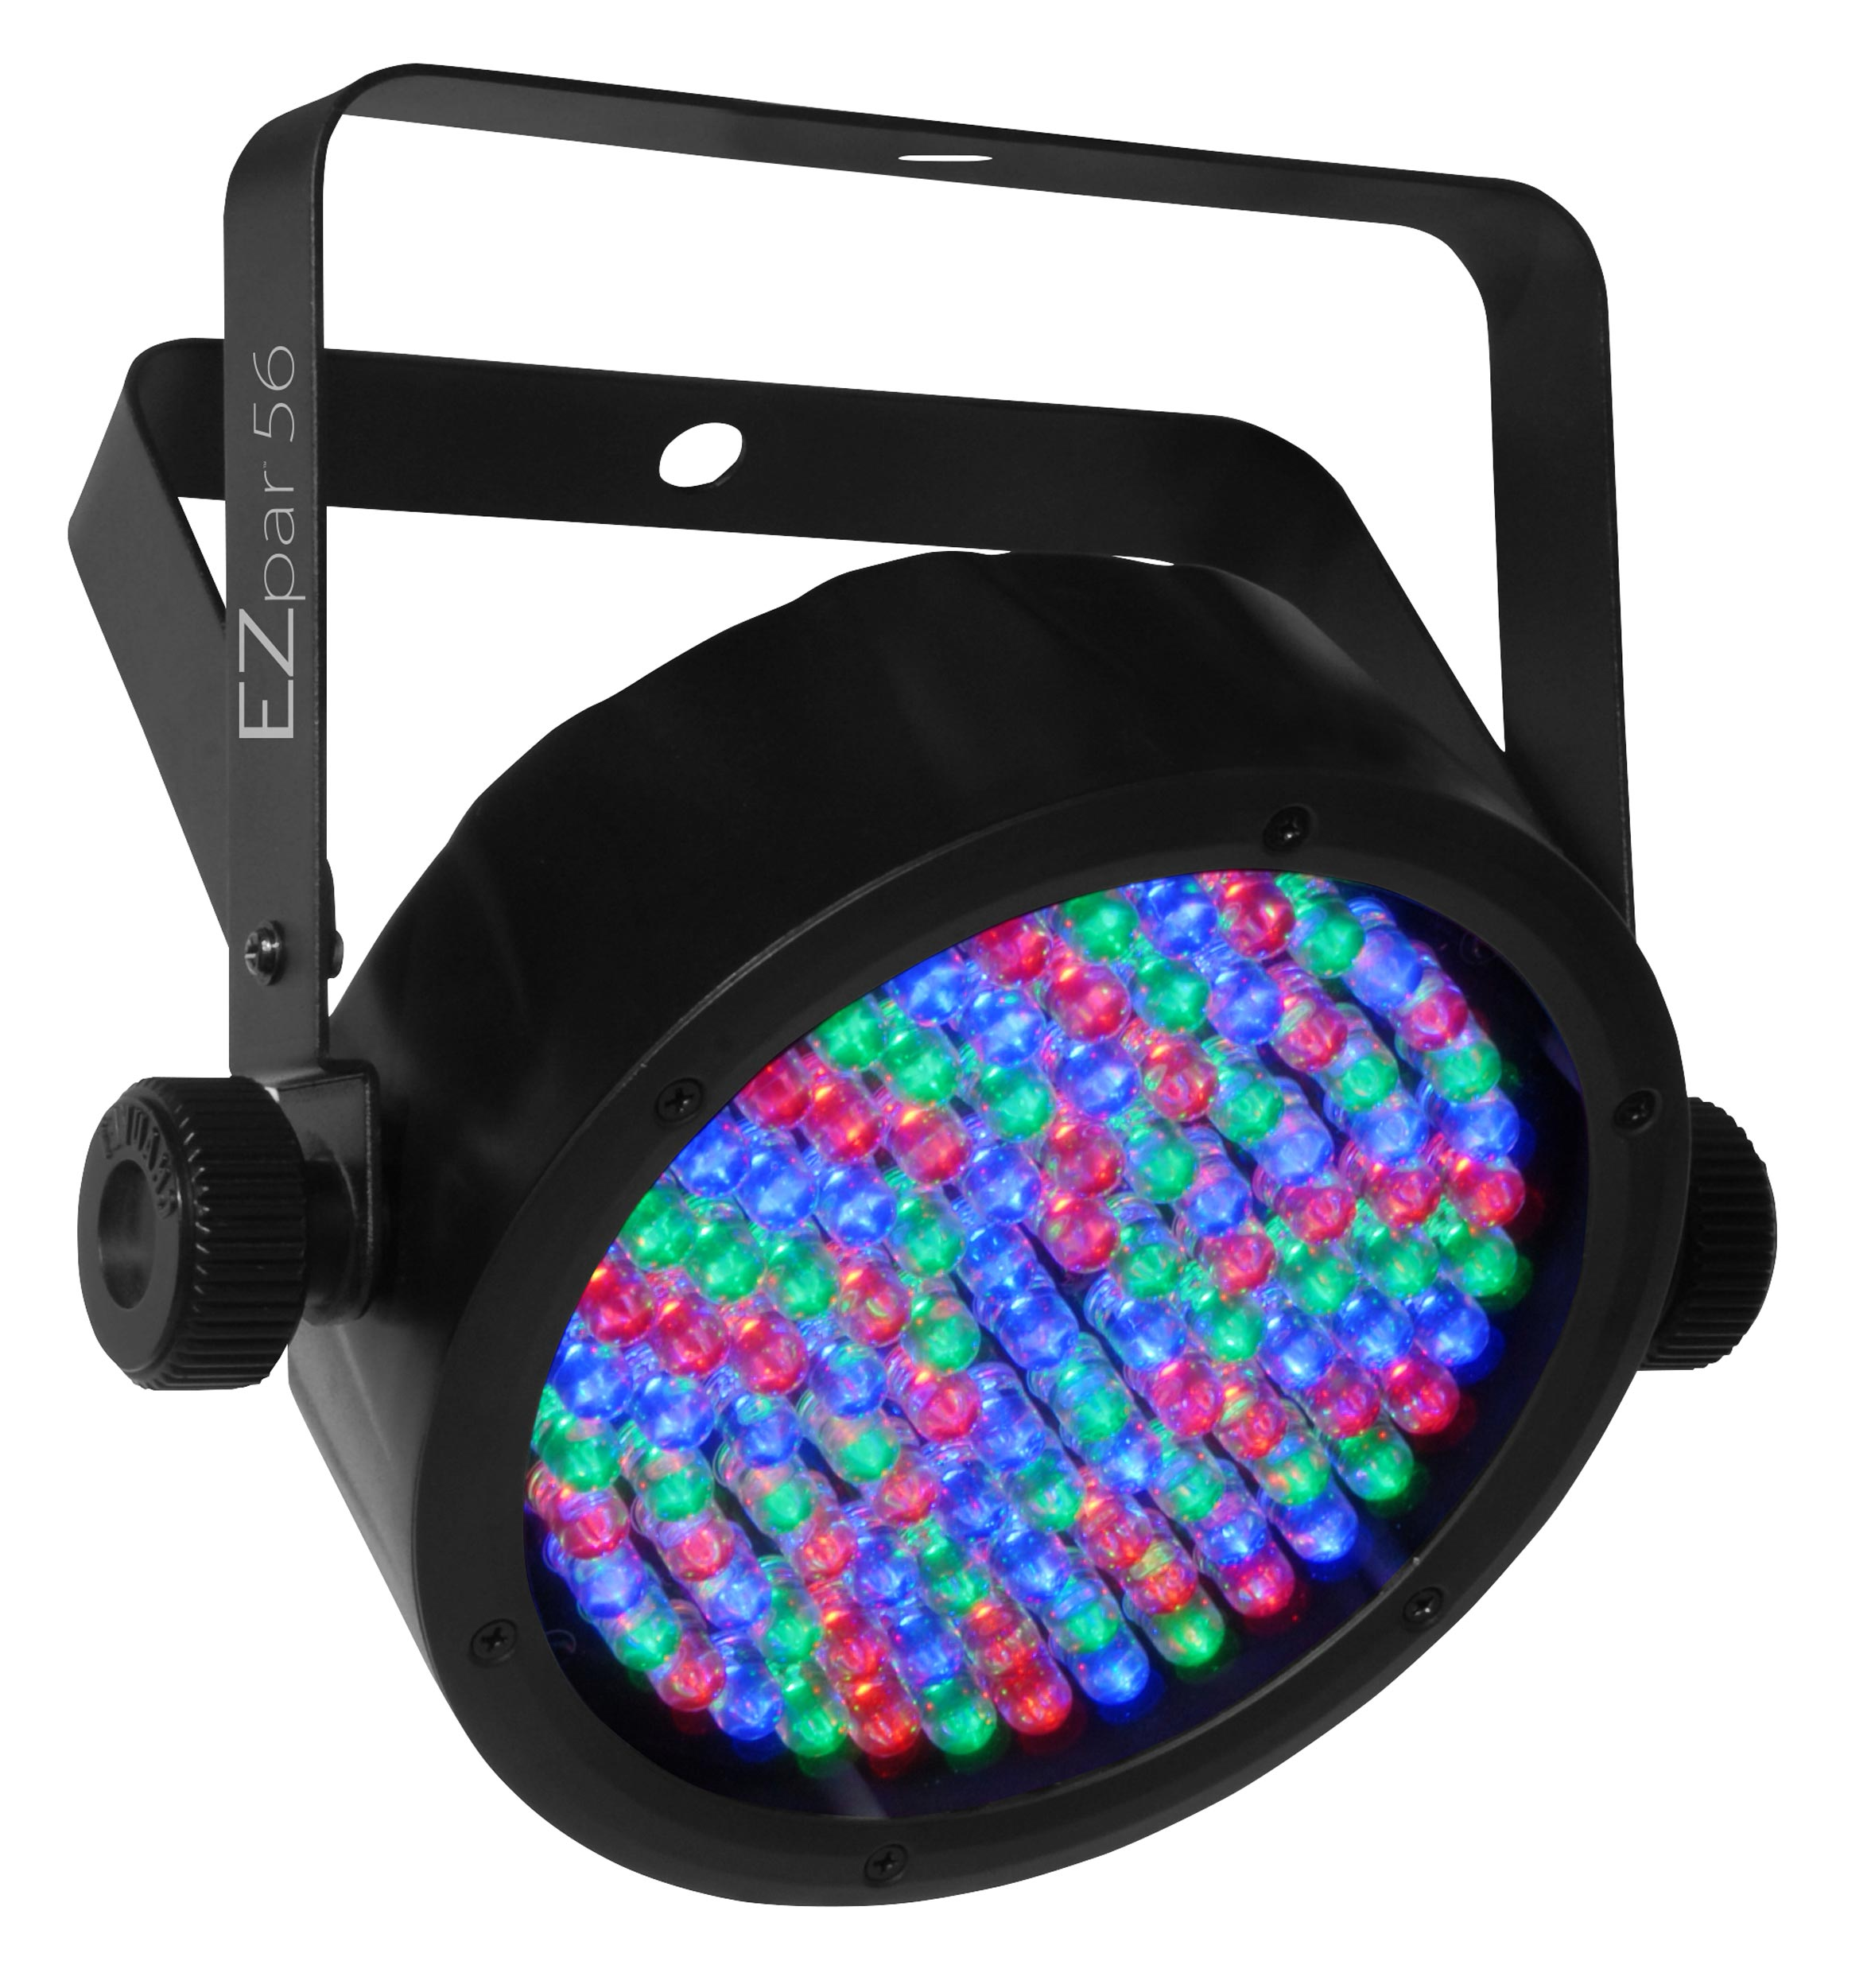 slimbank view p lighting left chauvet usb angle dj tri